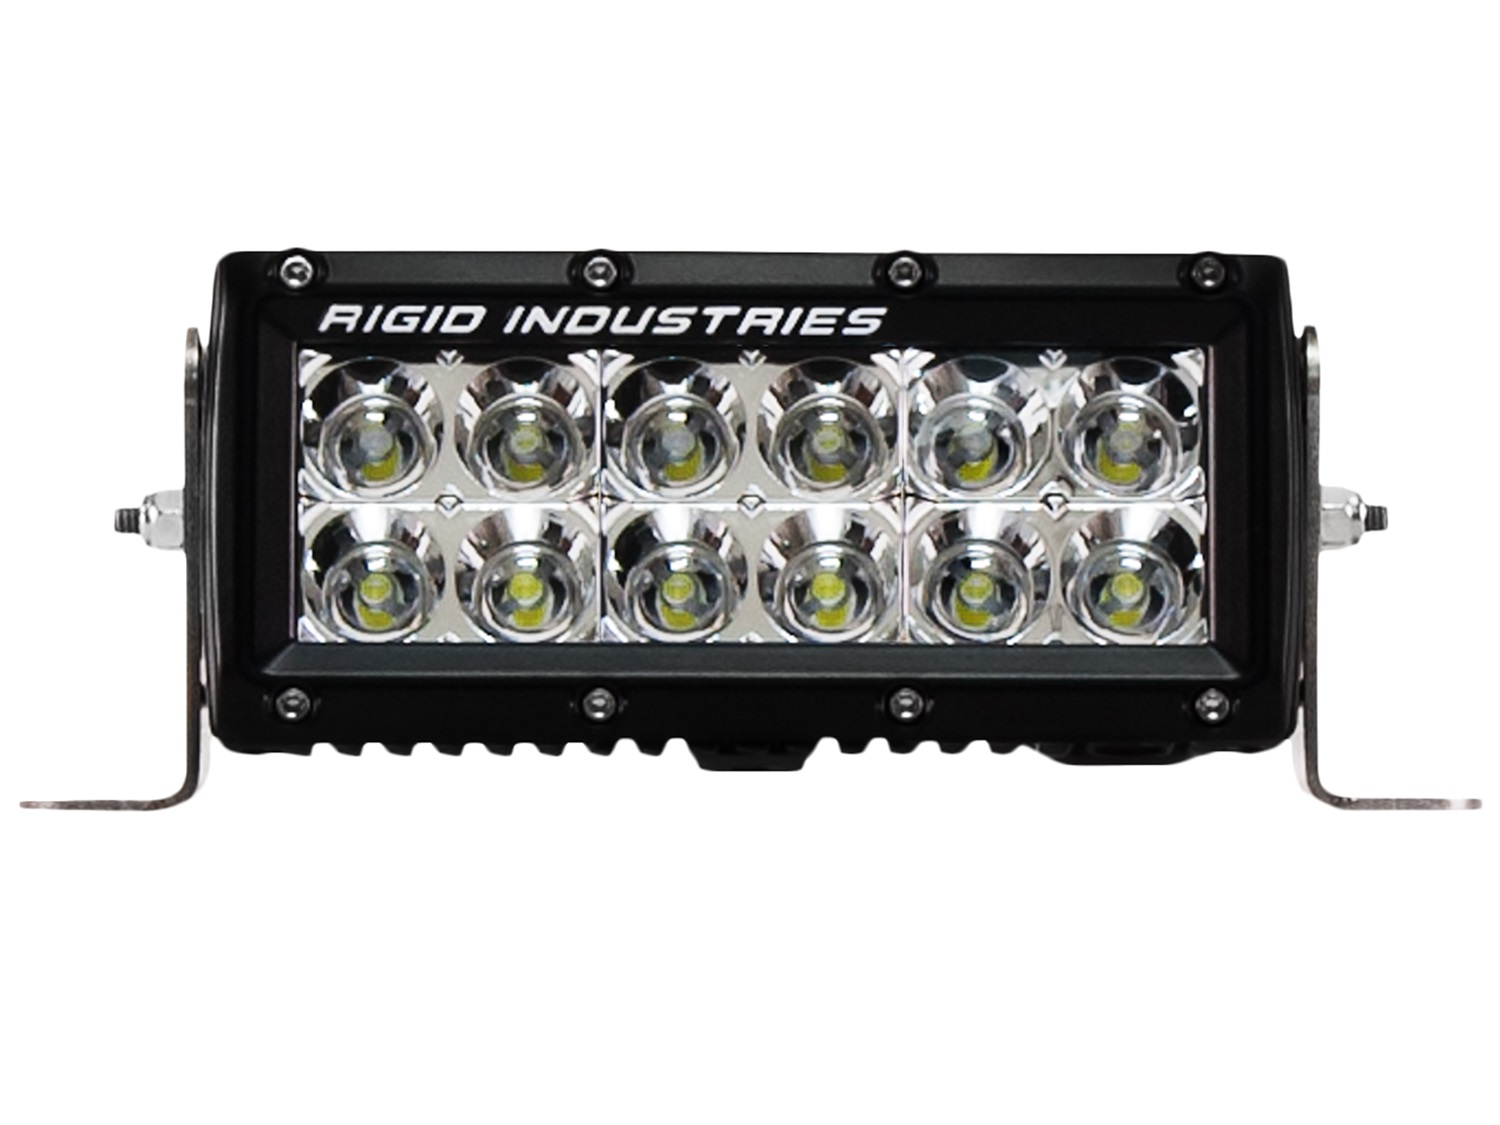 Rigid Industries 106112 E-Series 20 Deg. Flood LED Light